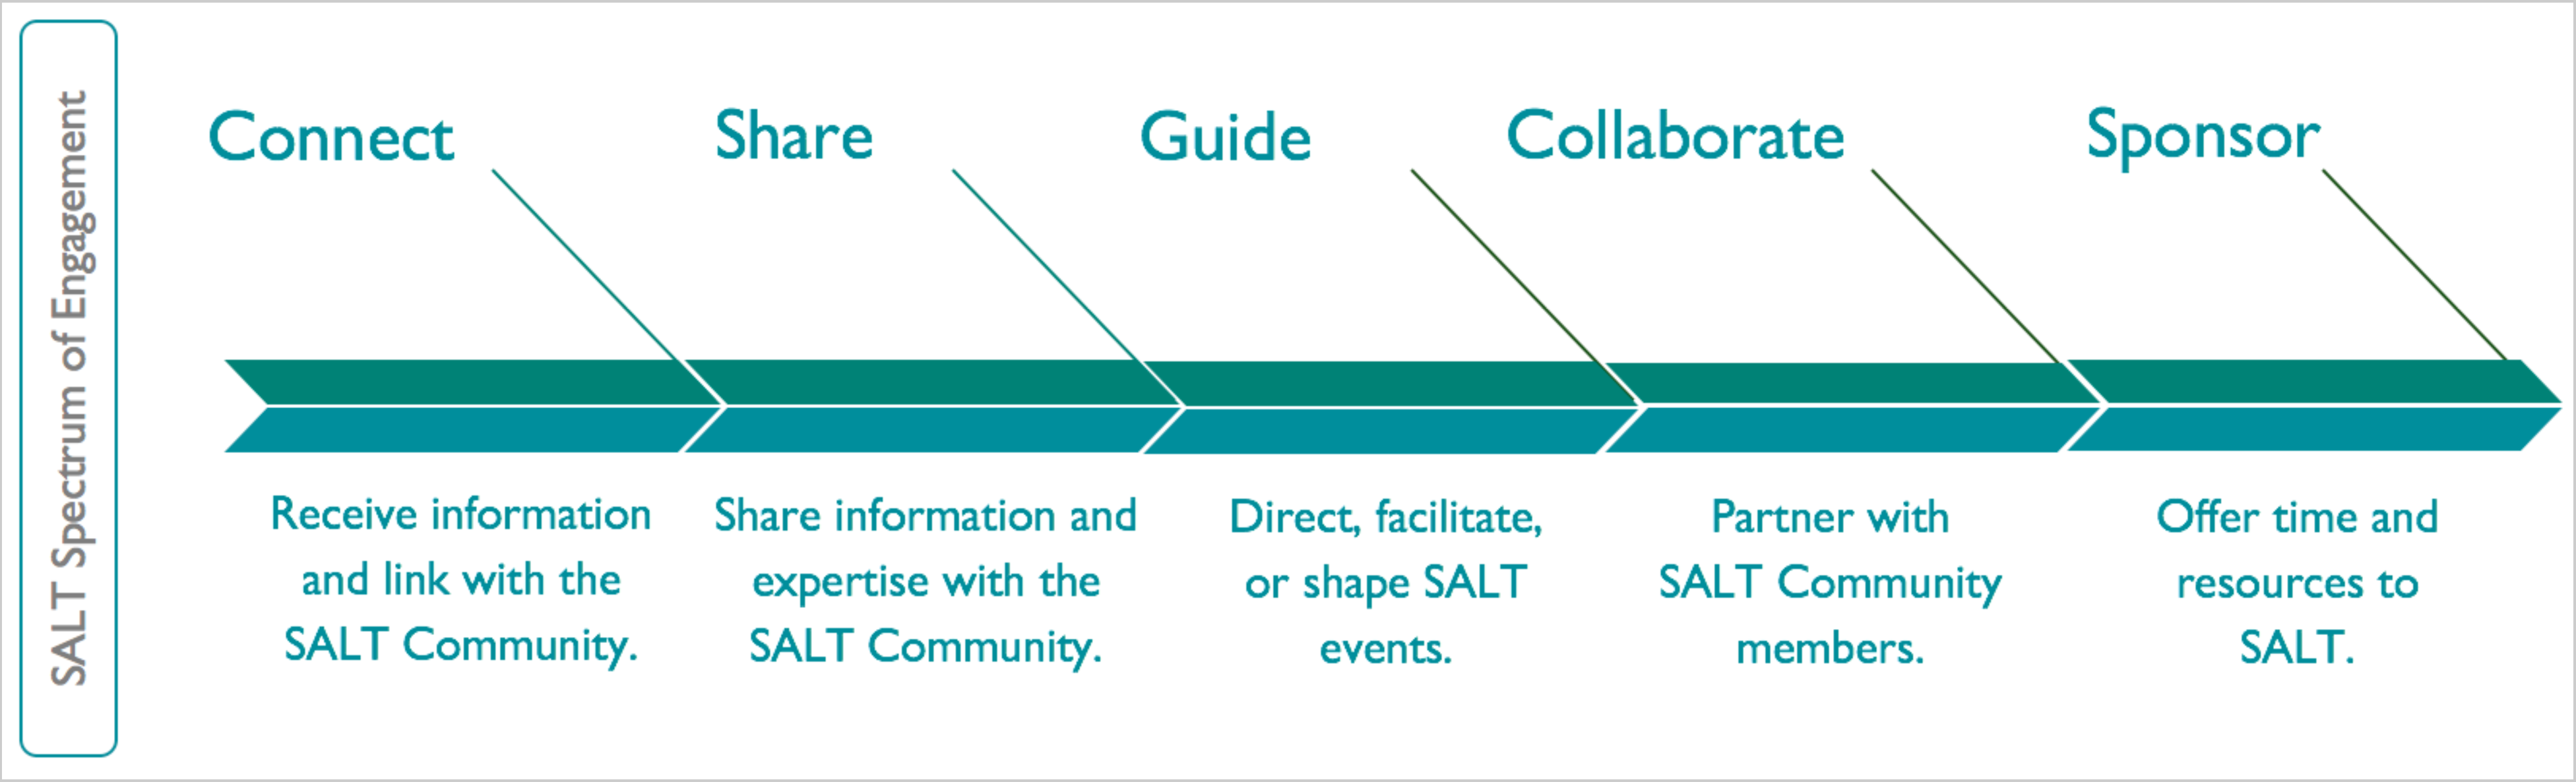 SALT Spectrum of Engagment - Connect: Receive information & link with the SALT Community. Share: Share information and expertise with the SALT community. Guide: Direct, facilitate, or shape SALT events. Collaborate: Partner with SALT community members. Sponsor: Offer time and resources to SALT.